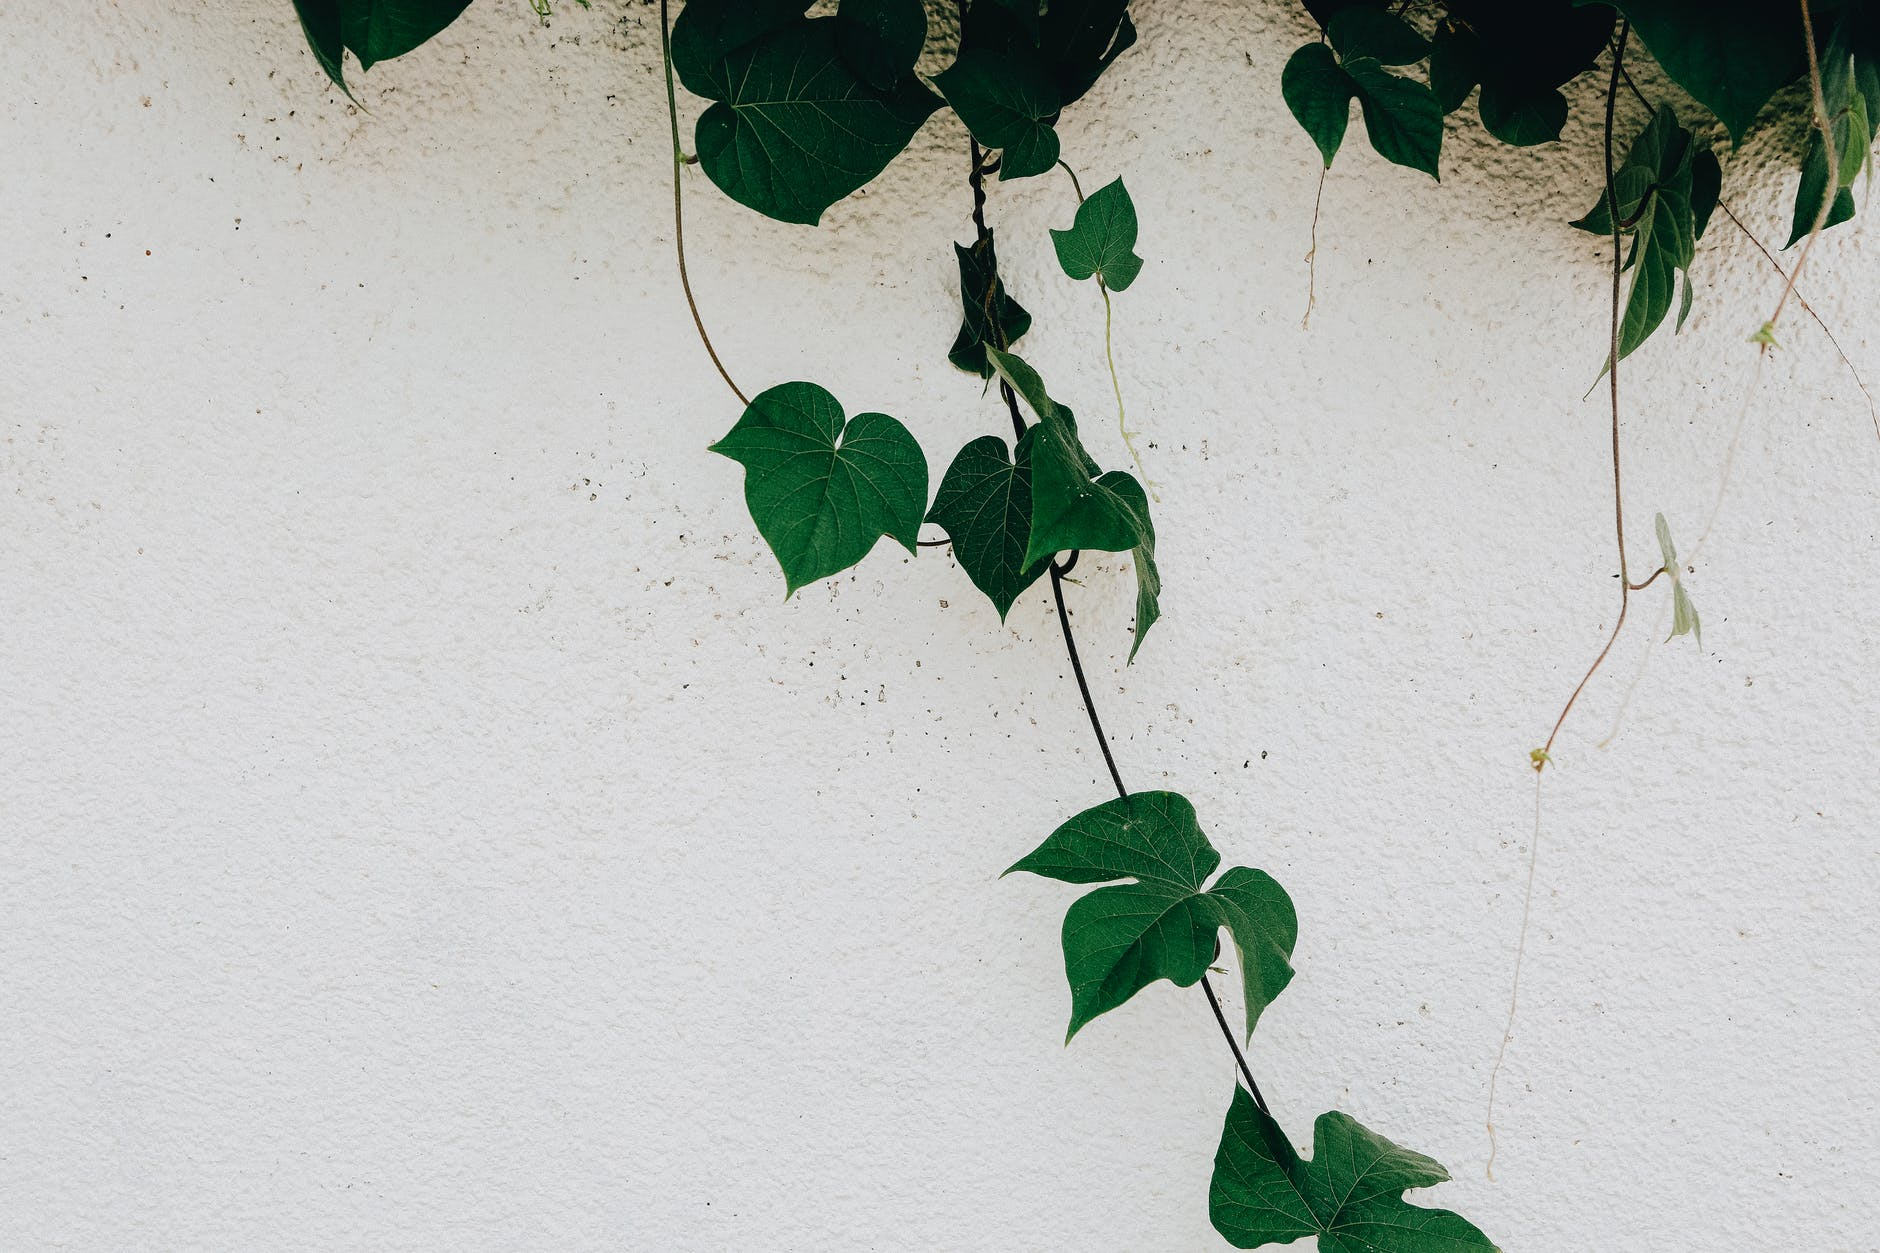 branch of green ivy plant over white wall